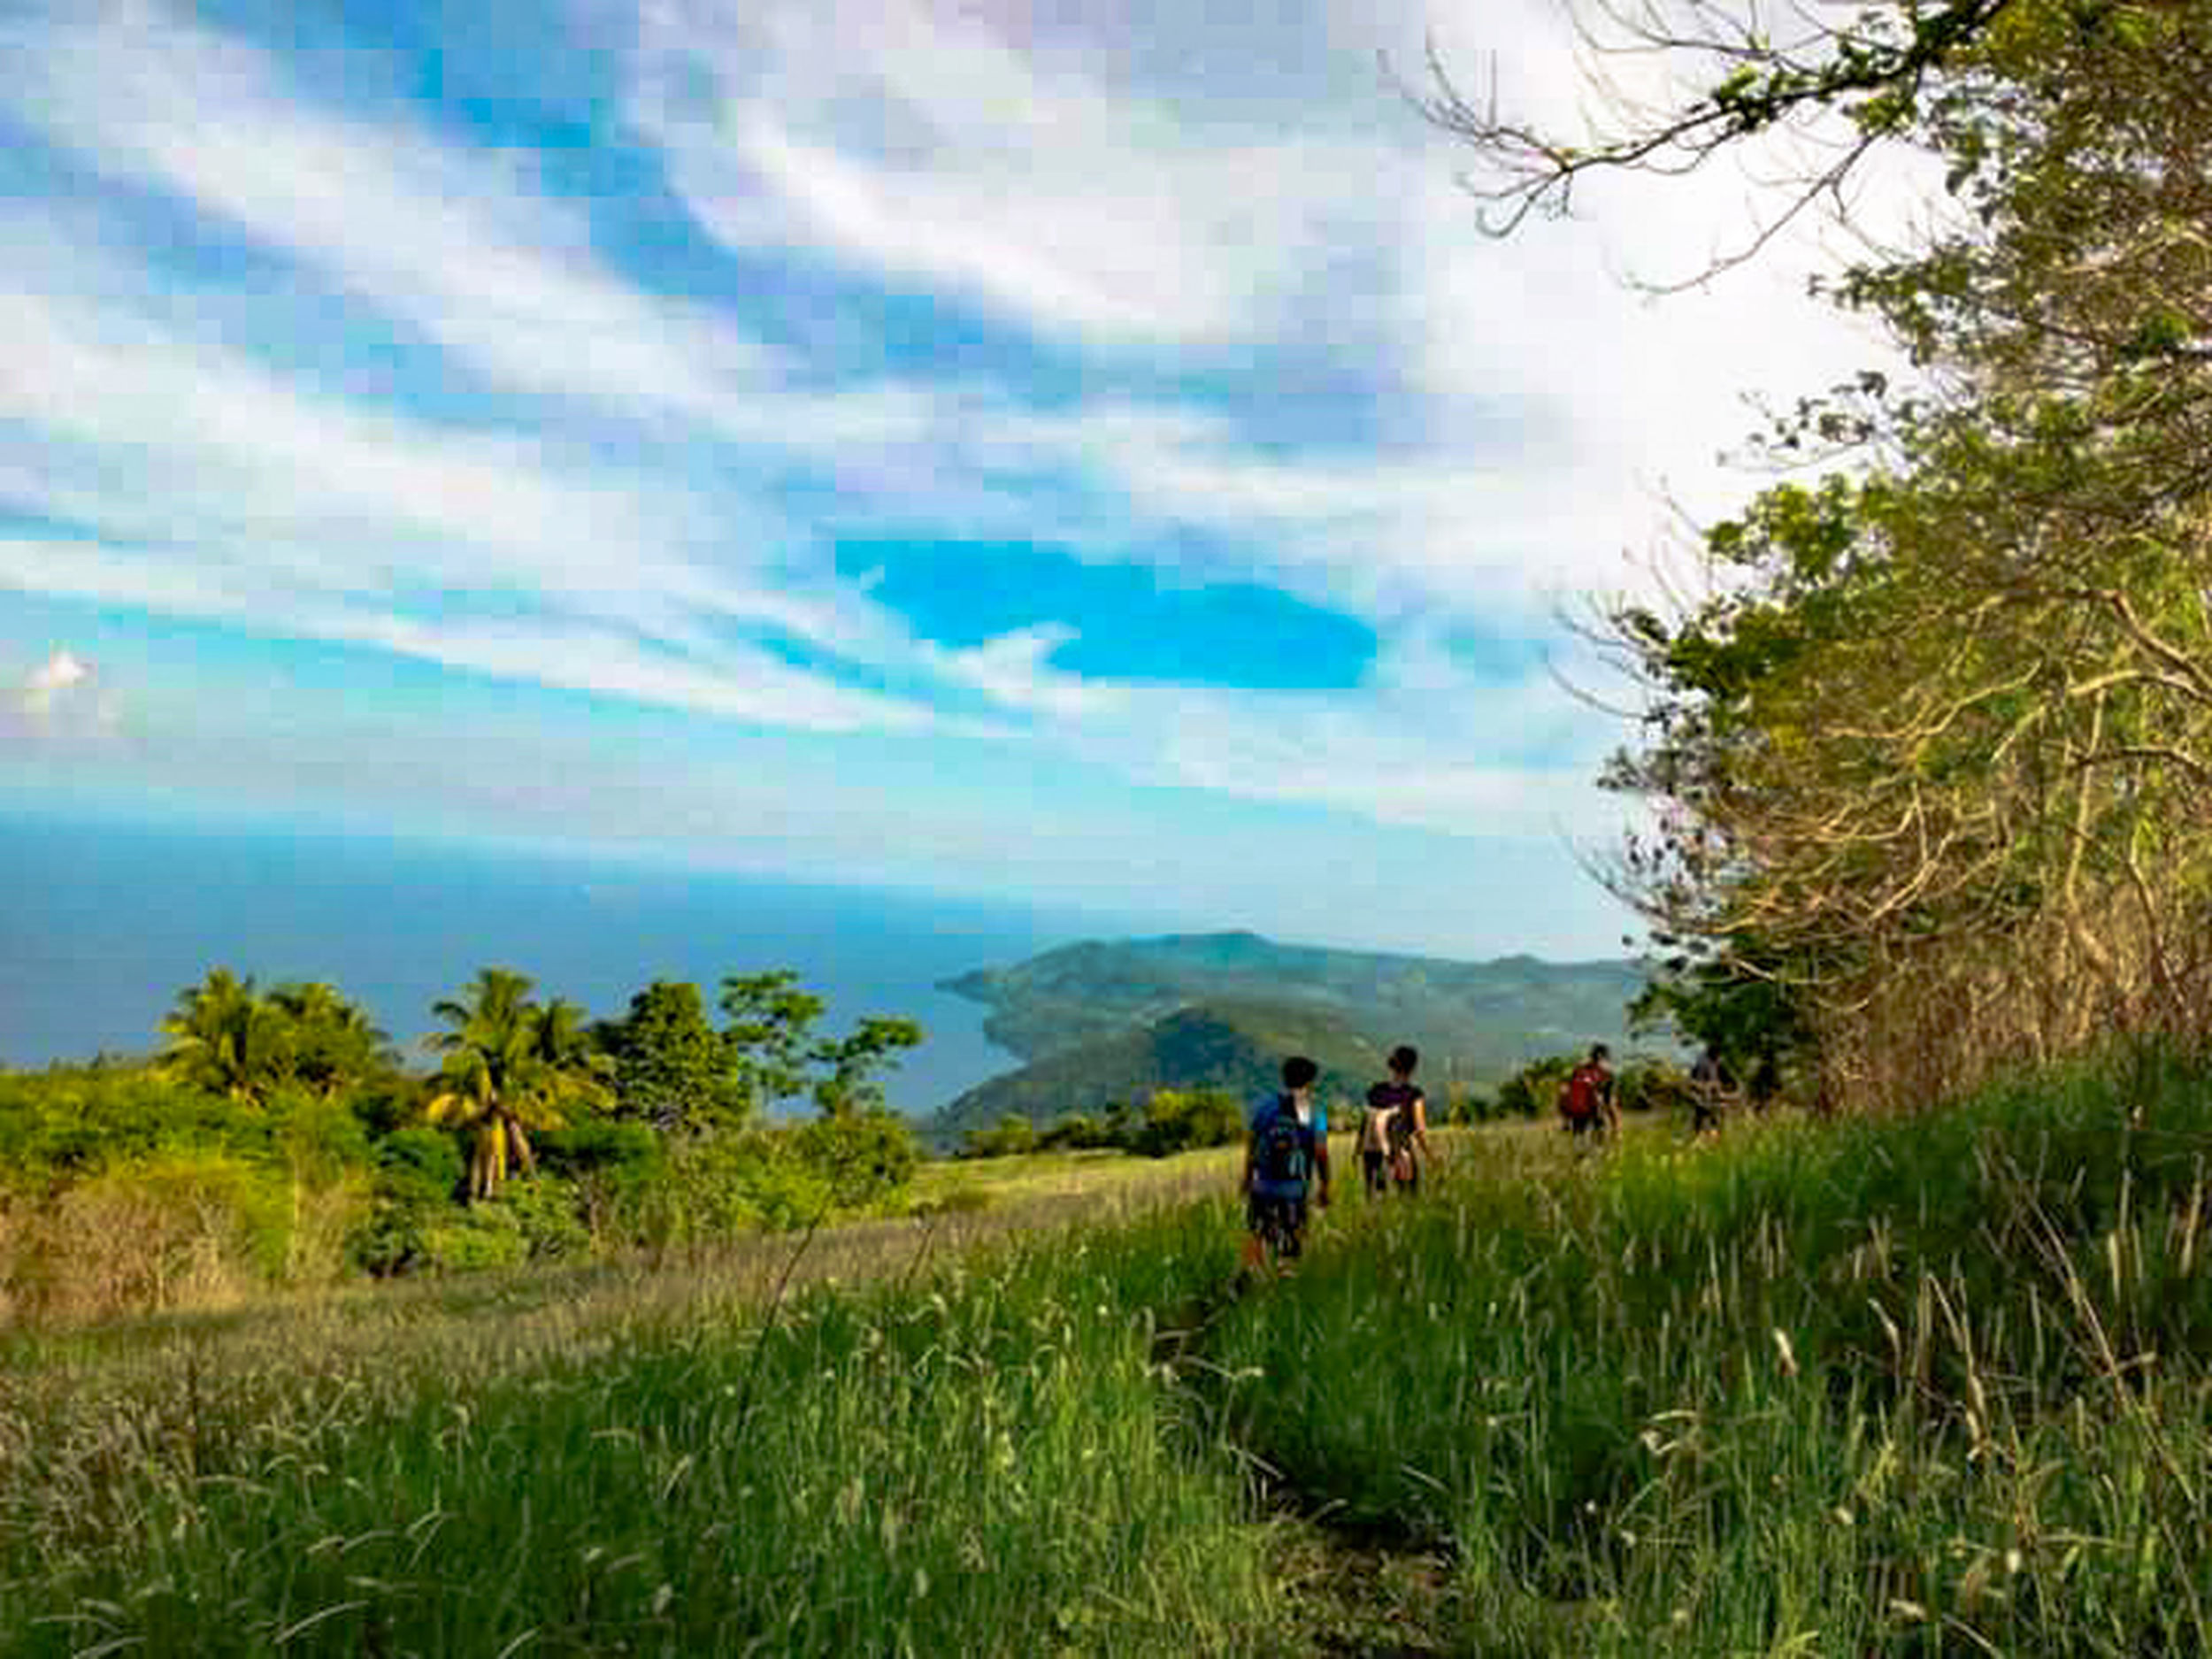 Ocean is more ancient than the mountains, and freighted with the memories and the dreams of time. PutingBato IslandGardenCityOfSamalHighestPeak Davaodelnorte SummerClimb2015 Itsmorefuninthephilippines 1755ftAboveSeaLevel